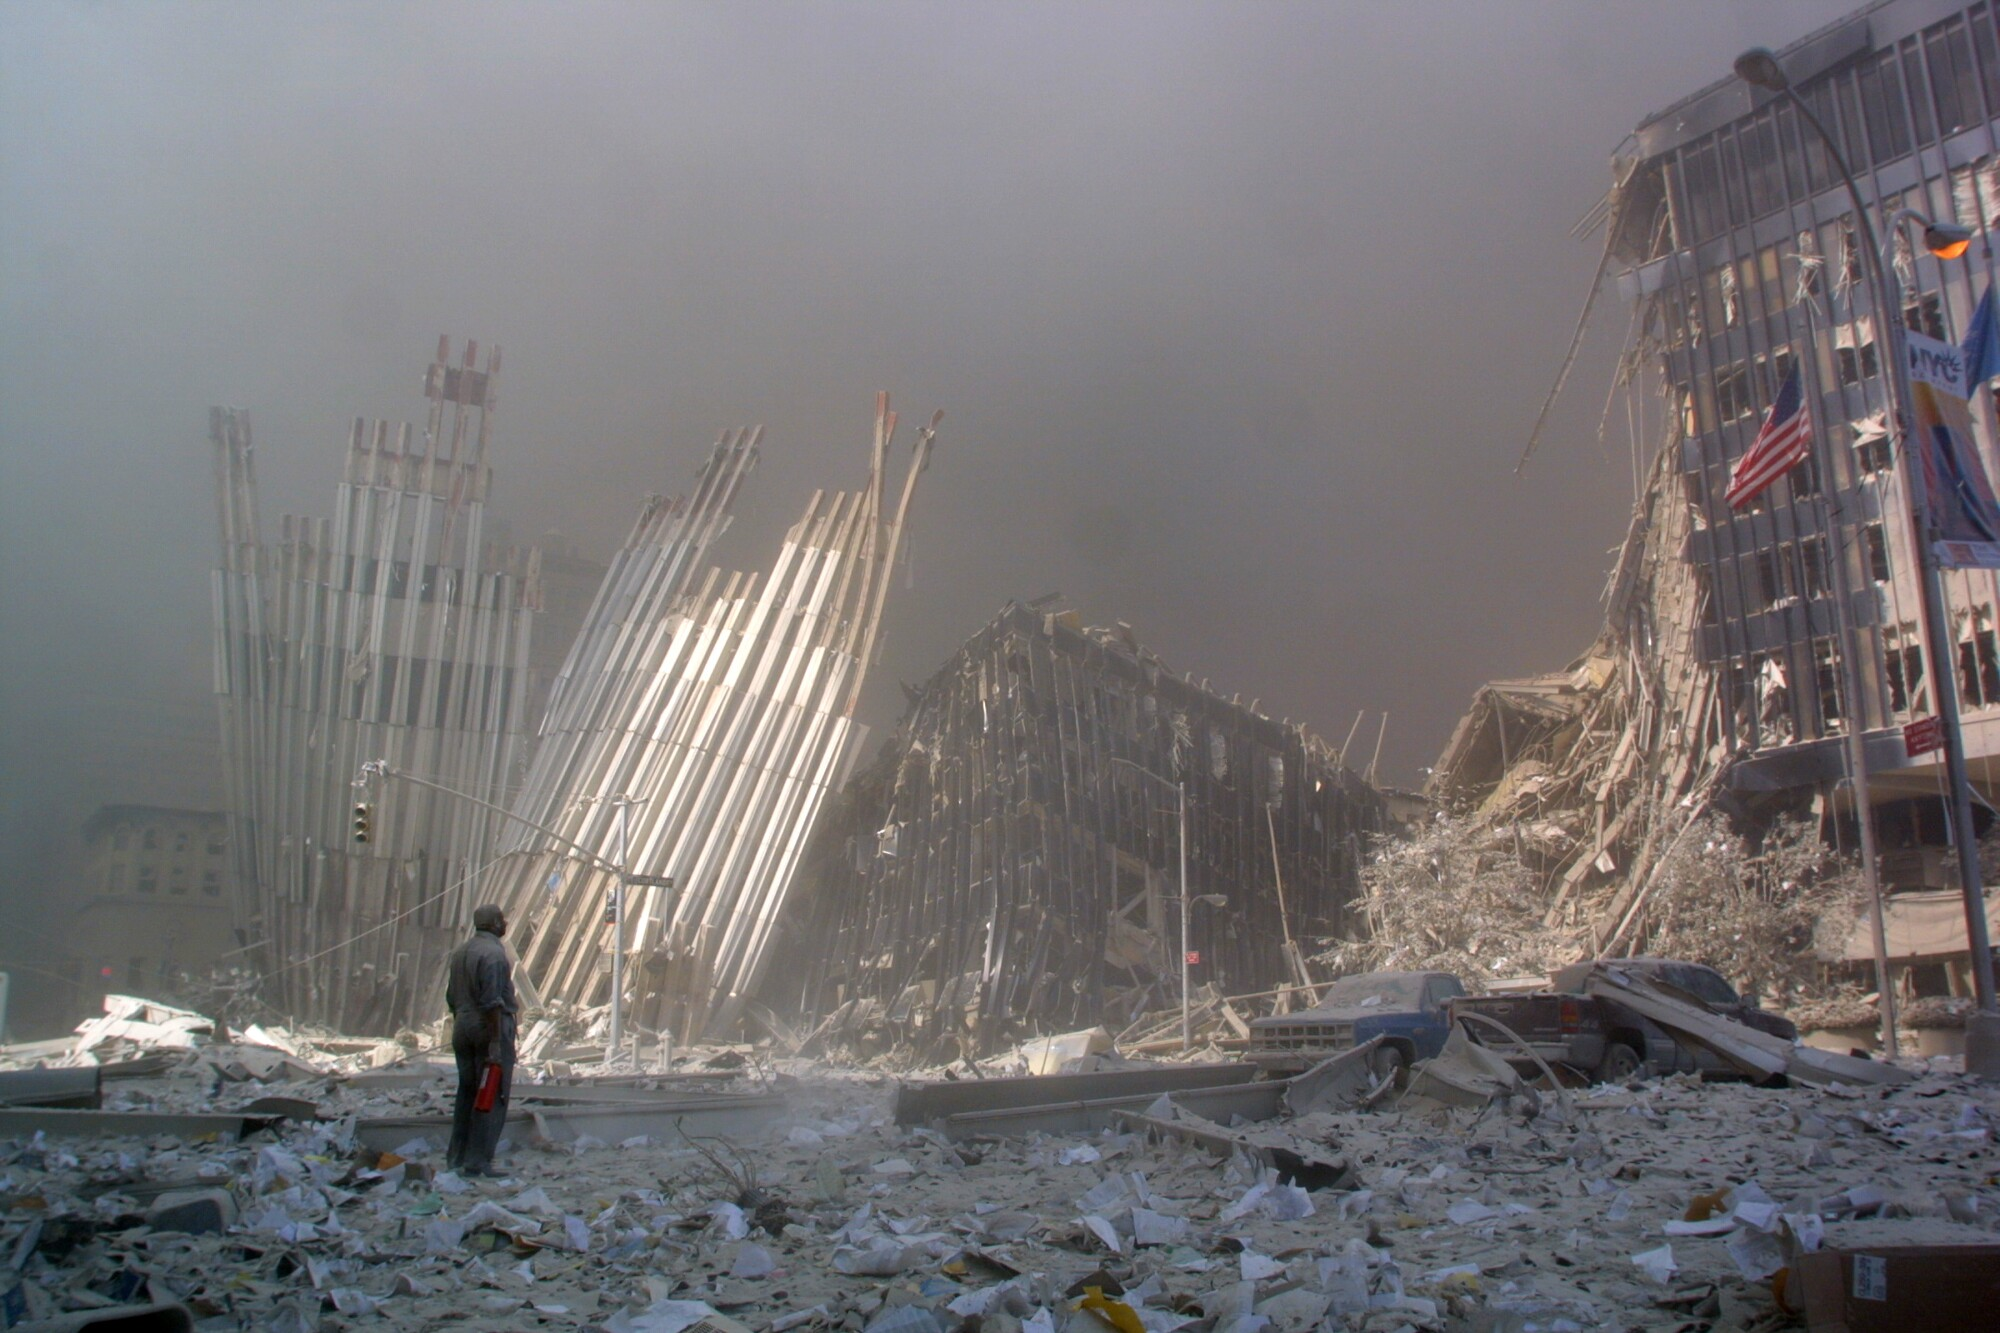 A man stands surrounded by debris, with an American flag on a pole nearby